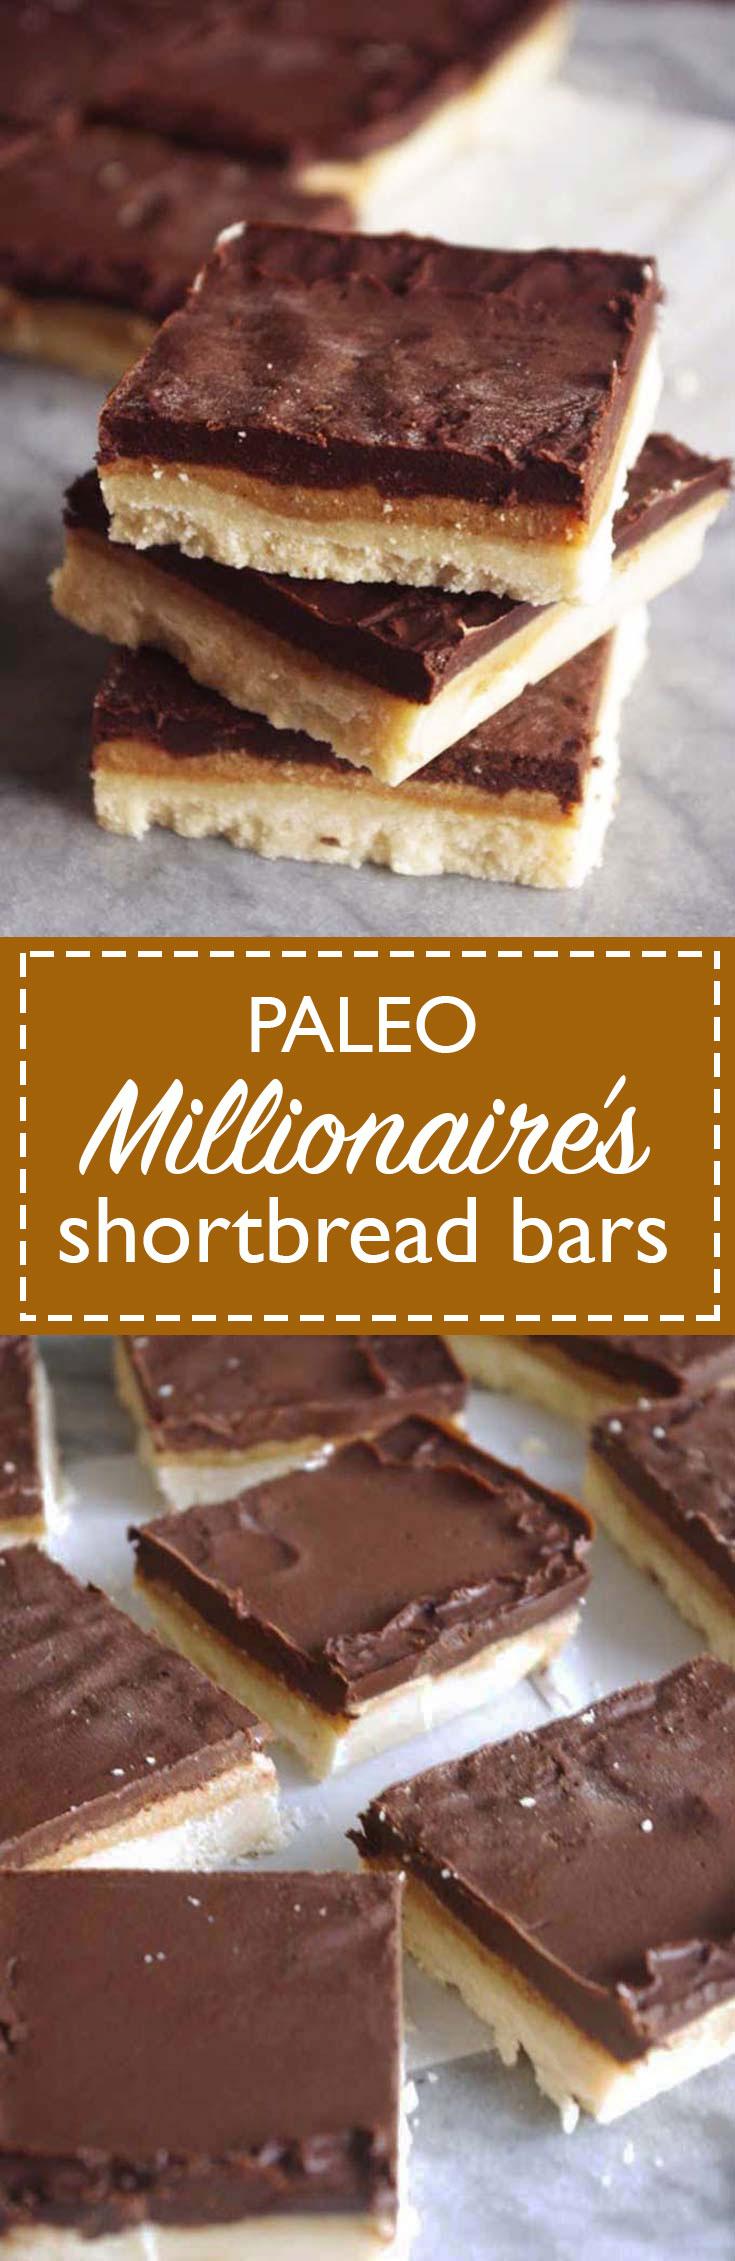 Paleo Millionaire's Shortbread | a no-bake, paleo version of Millionaire's shortbread that tastes just as sweet and satisfying as the original! | www.thebatterthickens.com